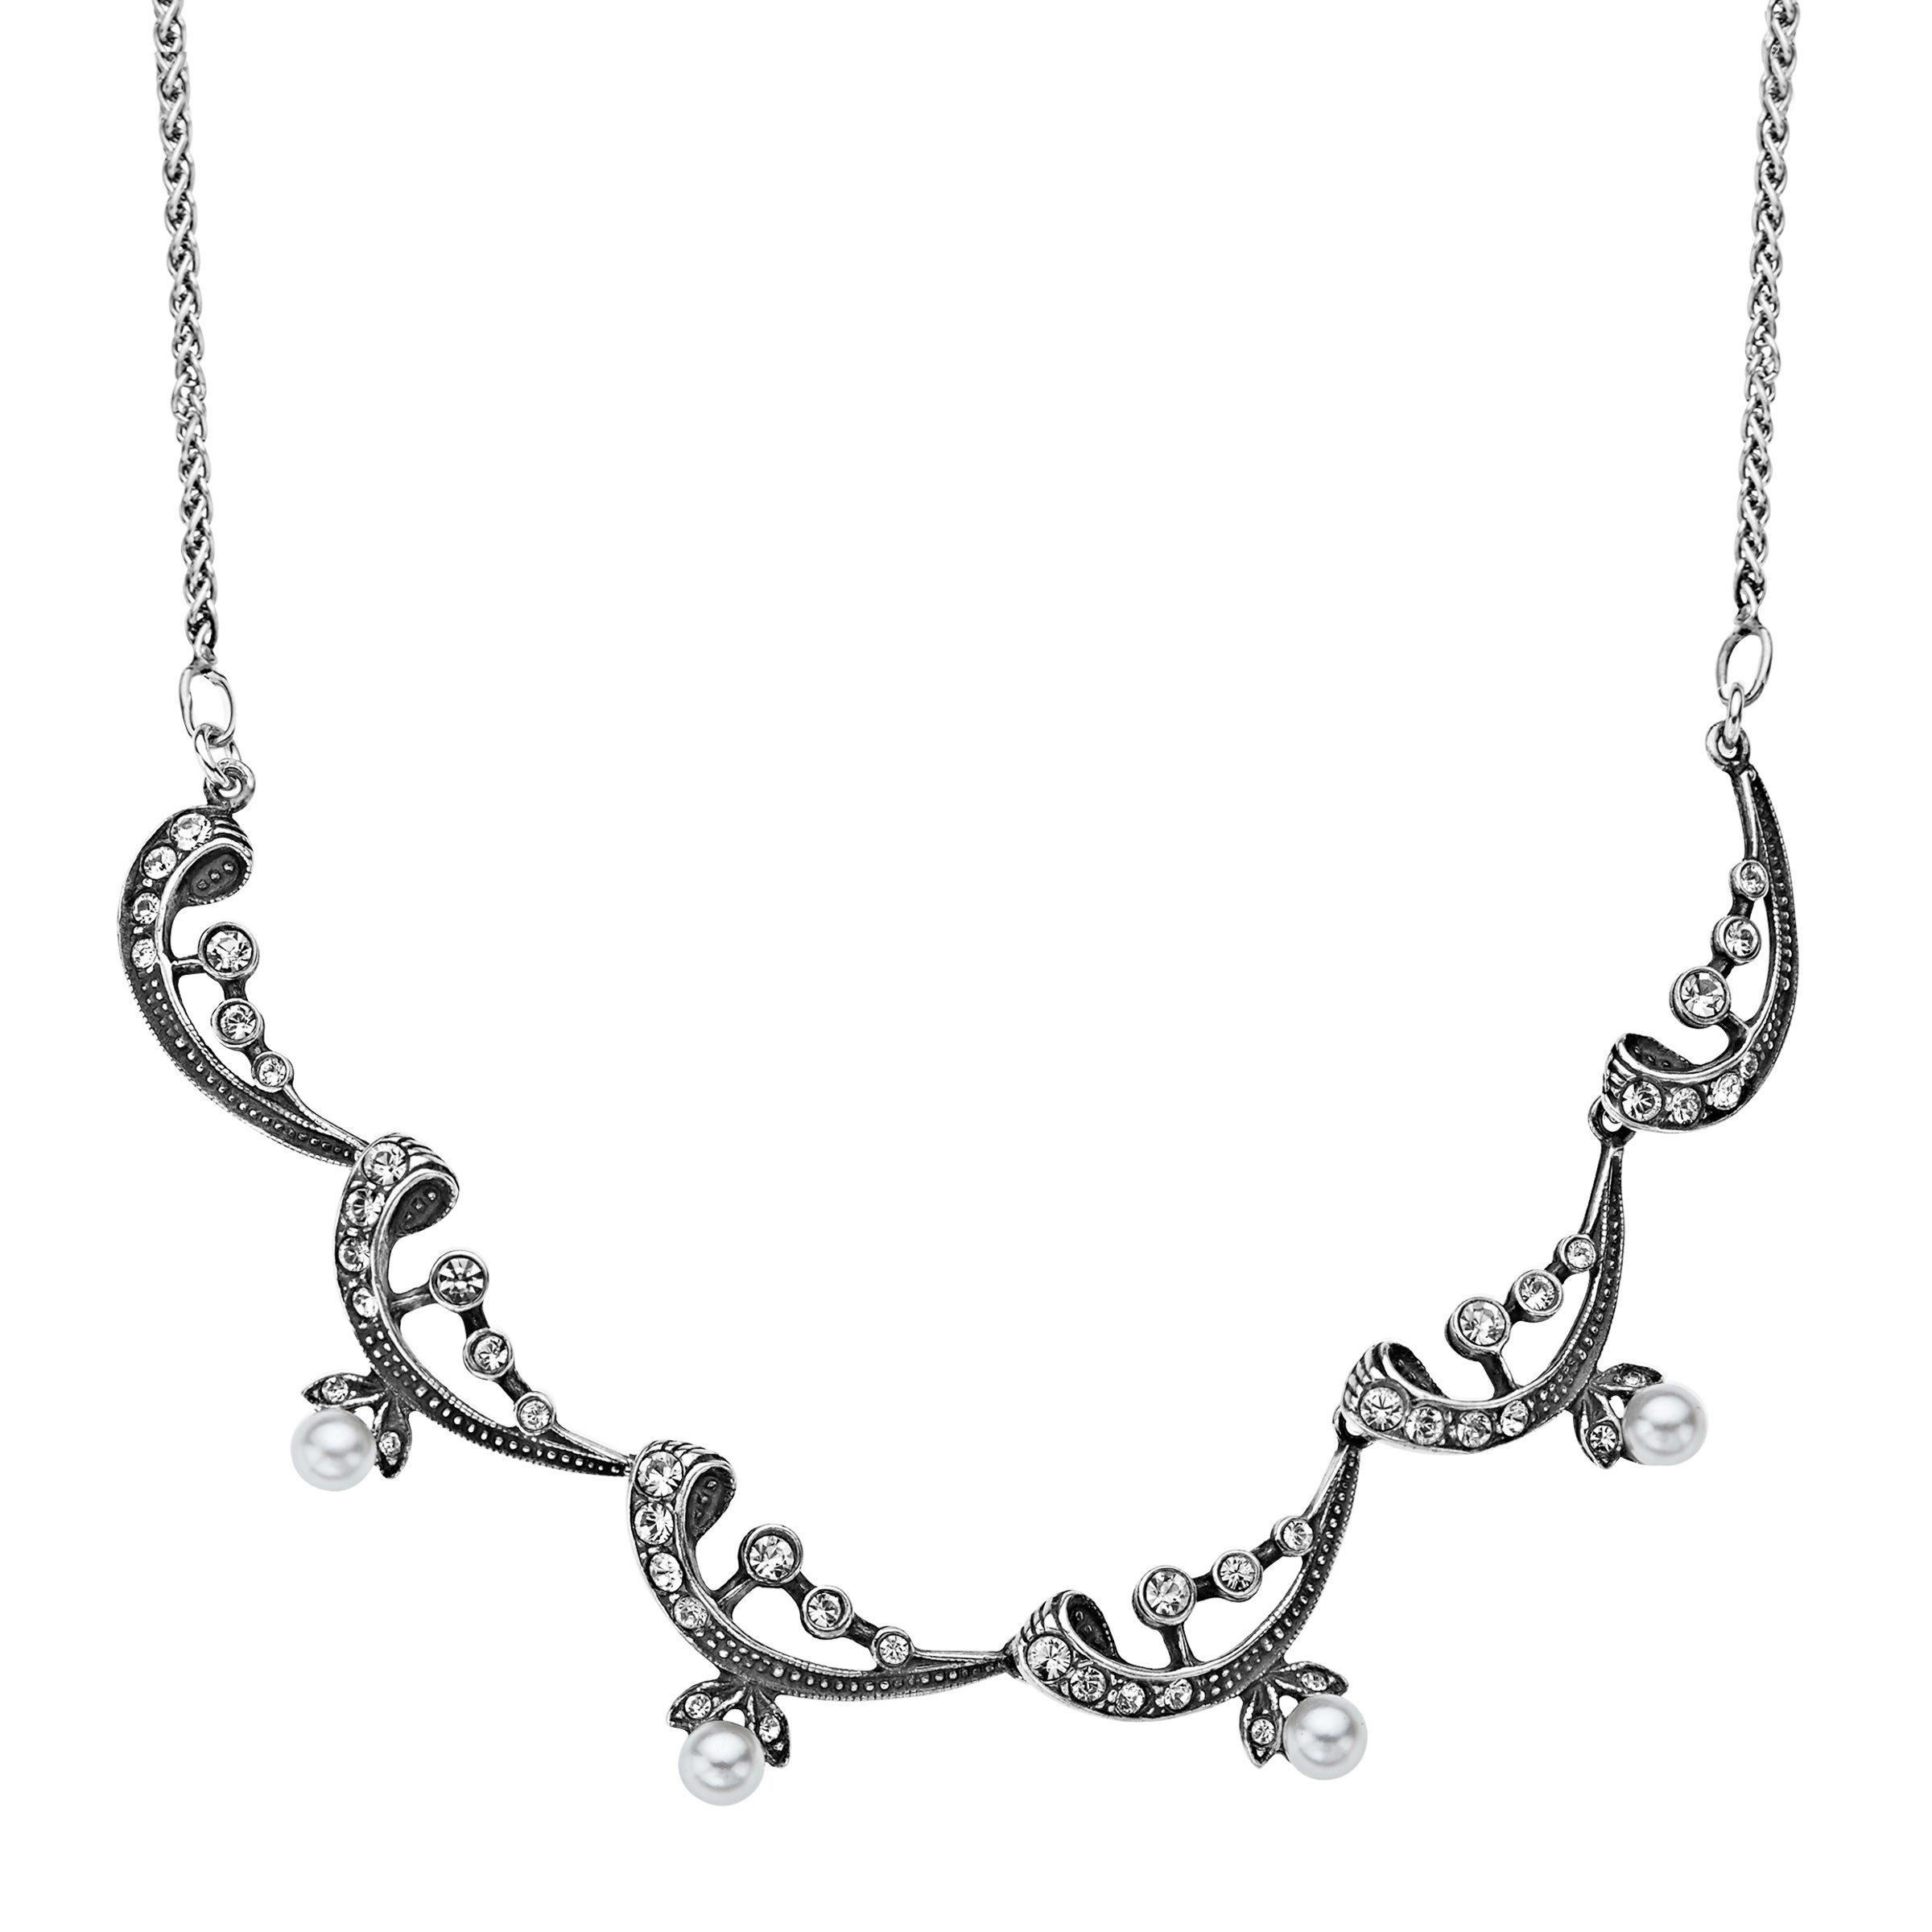 Van Kempen Victorian Simulated Pearl Necklace with Swarovski Crystals in Sterling Silver